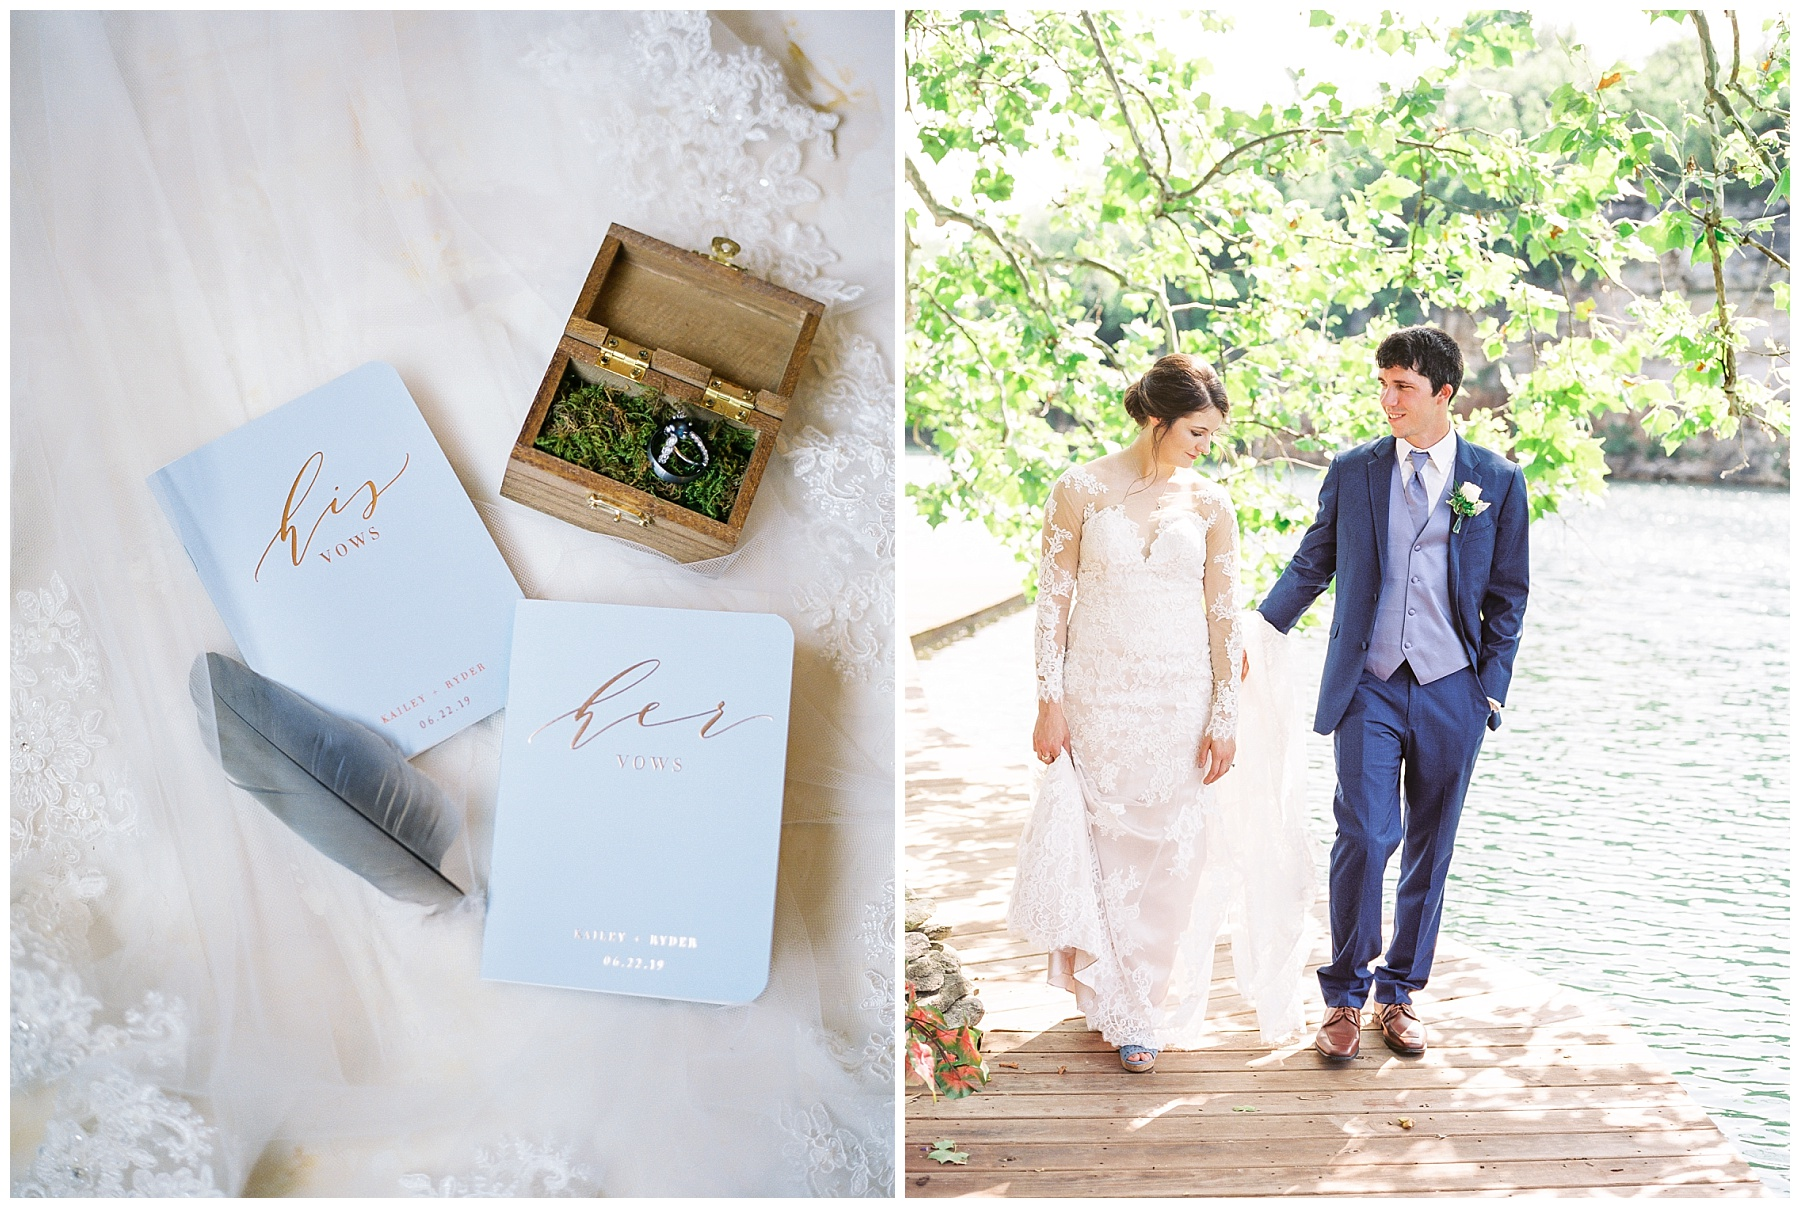 Intimate Mountain Hues Inspired Summer Wedding at Wildcliff Weddings and Events by Kelsi Kliethermes Photography Best Missouri and Maui Wedding Photographer_0028.jpg